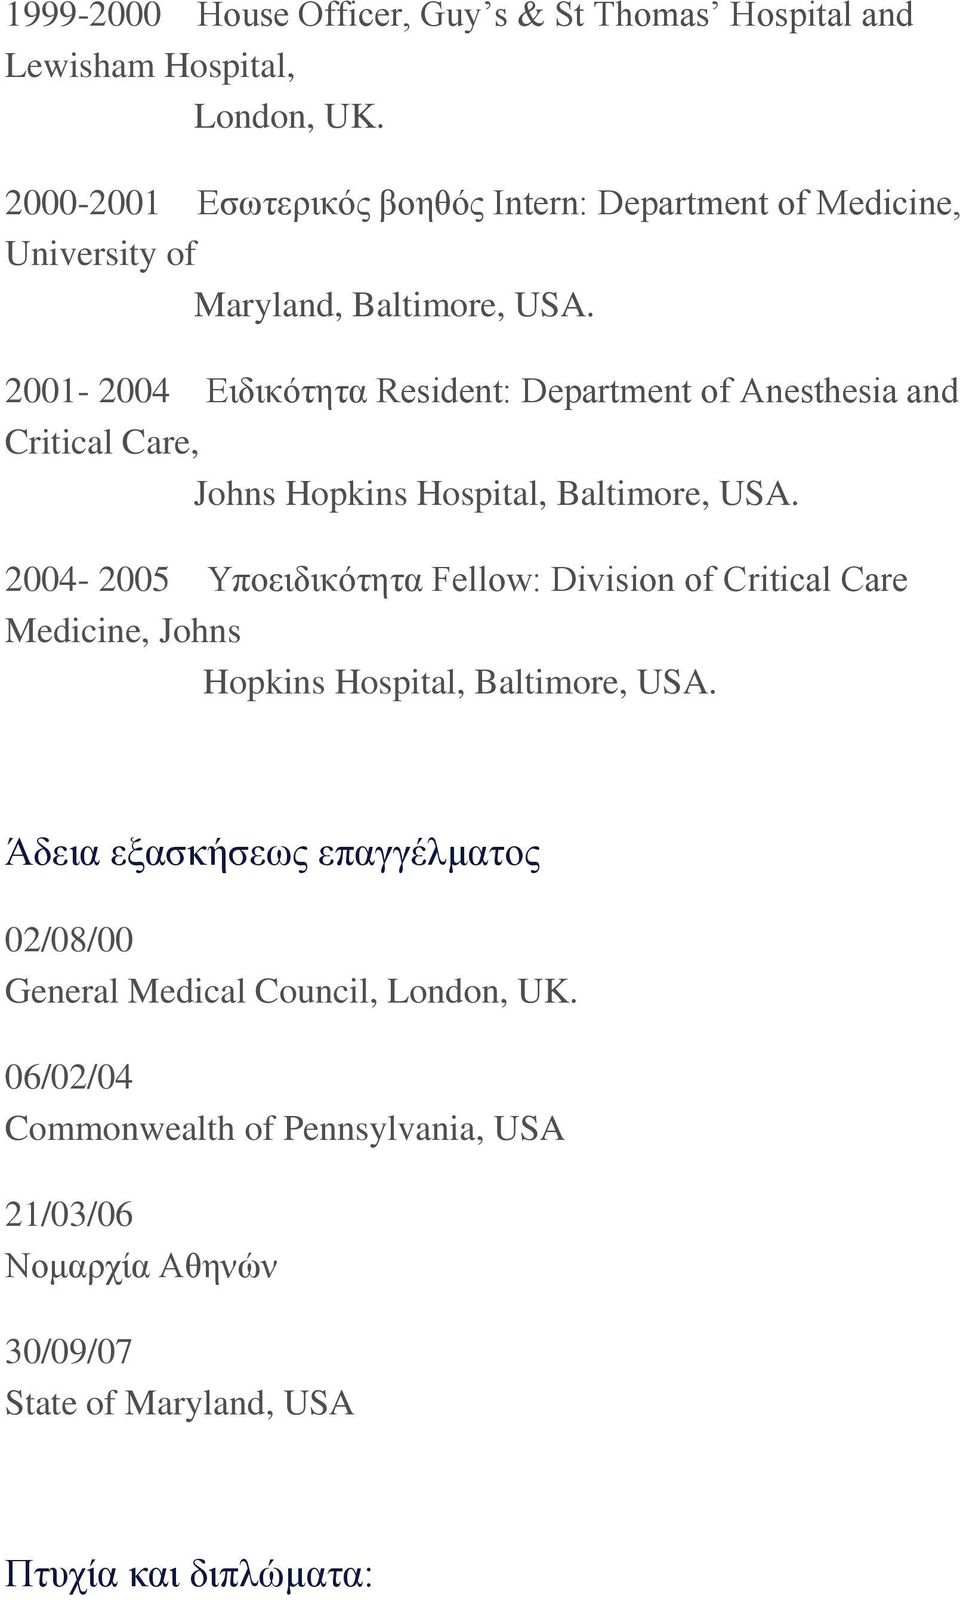 2001-2004 Ειδικότητα Resident: Department of Anesthesia and Critical Care, Johns Hopkins Hospital, Baltimore, USA.